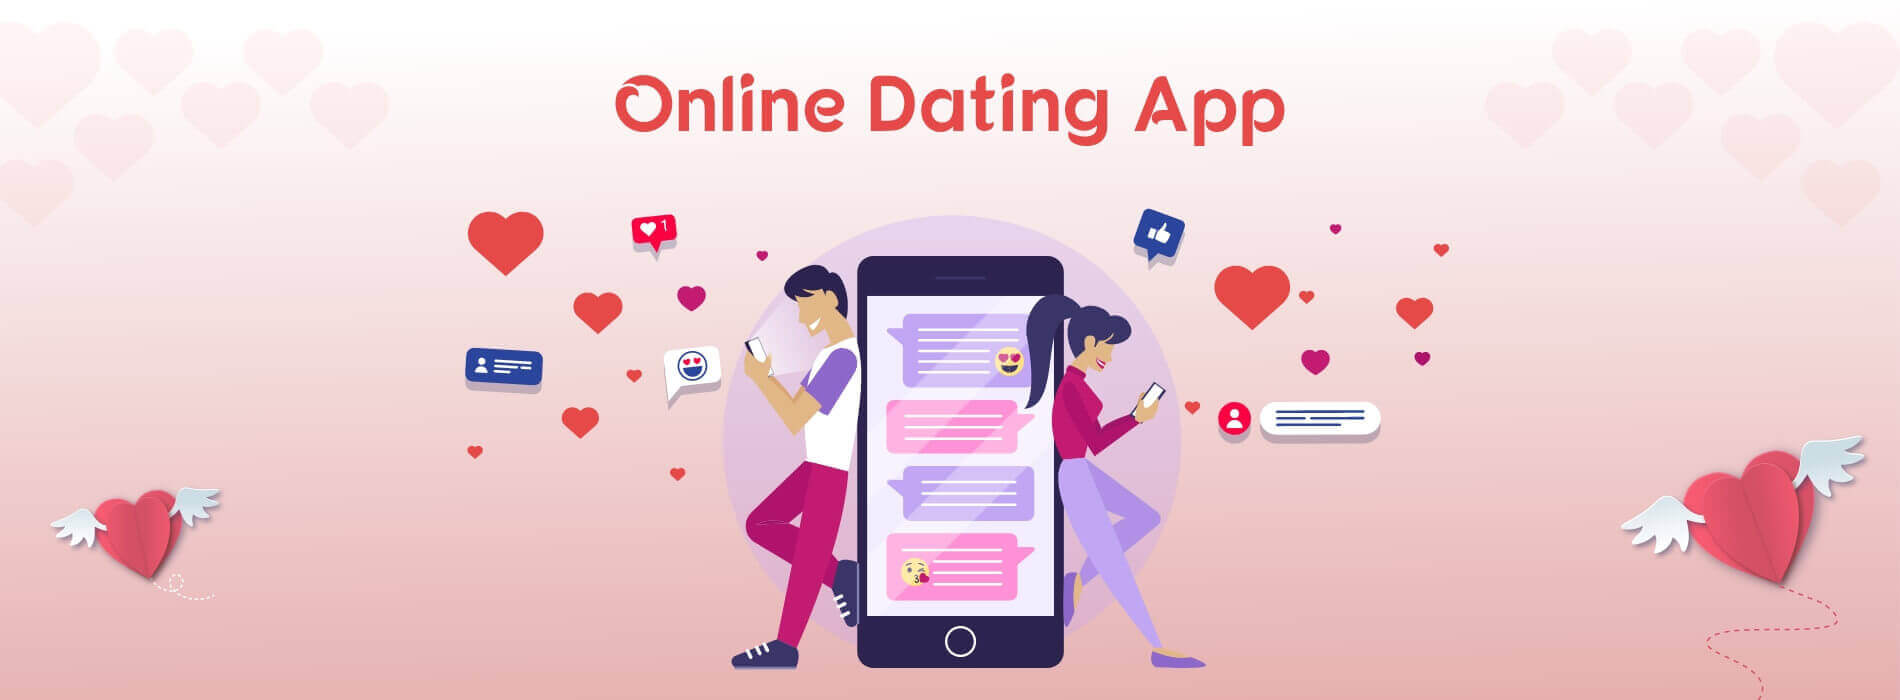 How We Created A Social Online Dating App